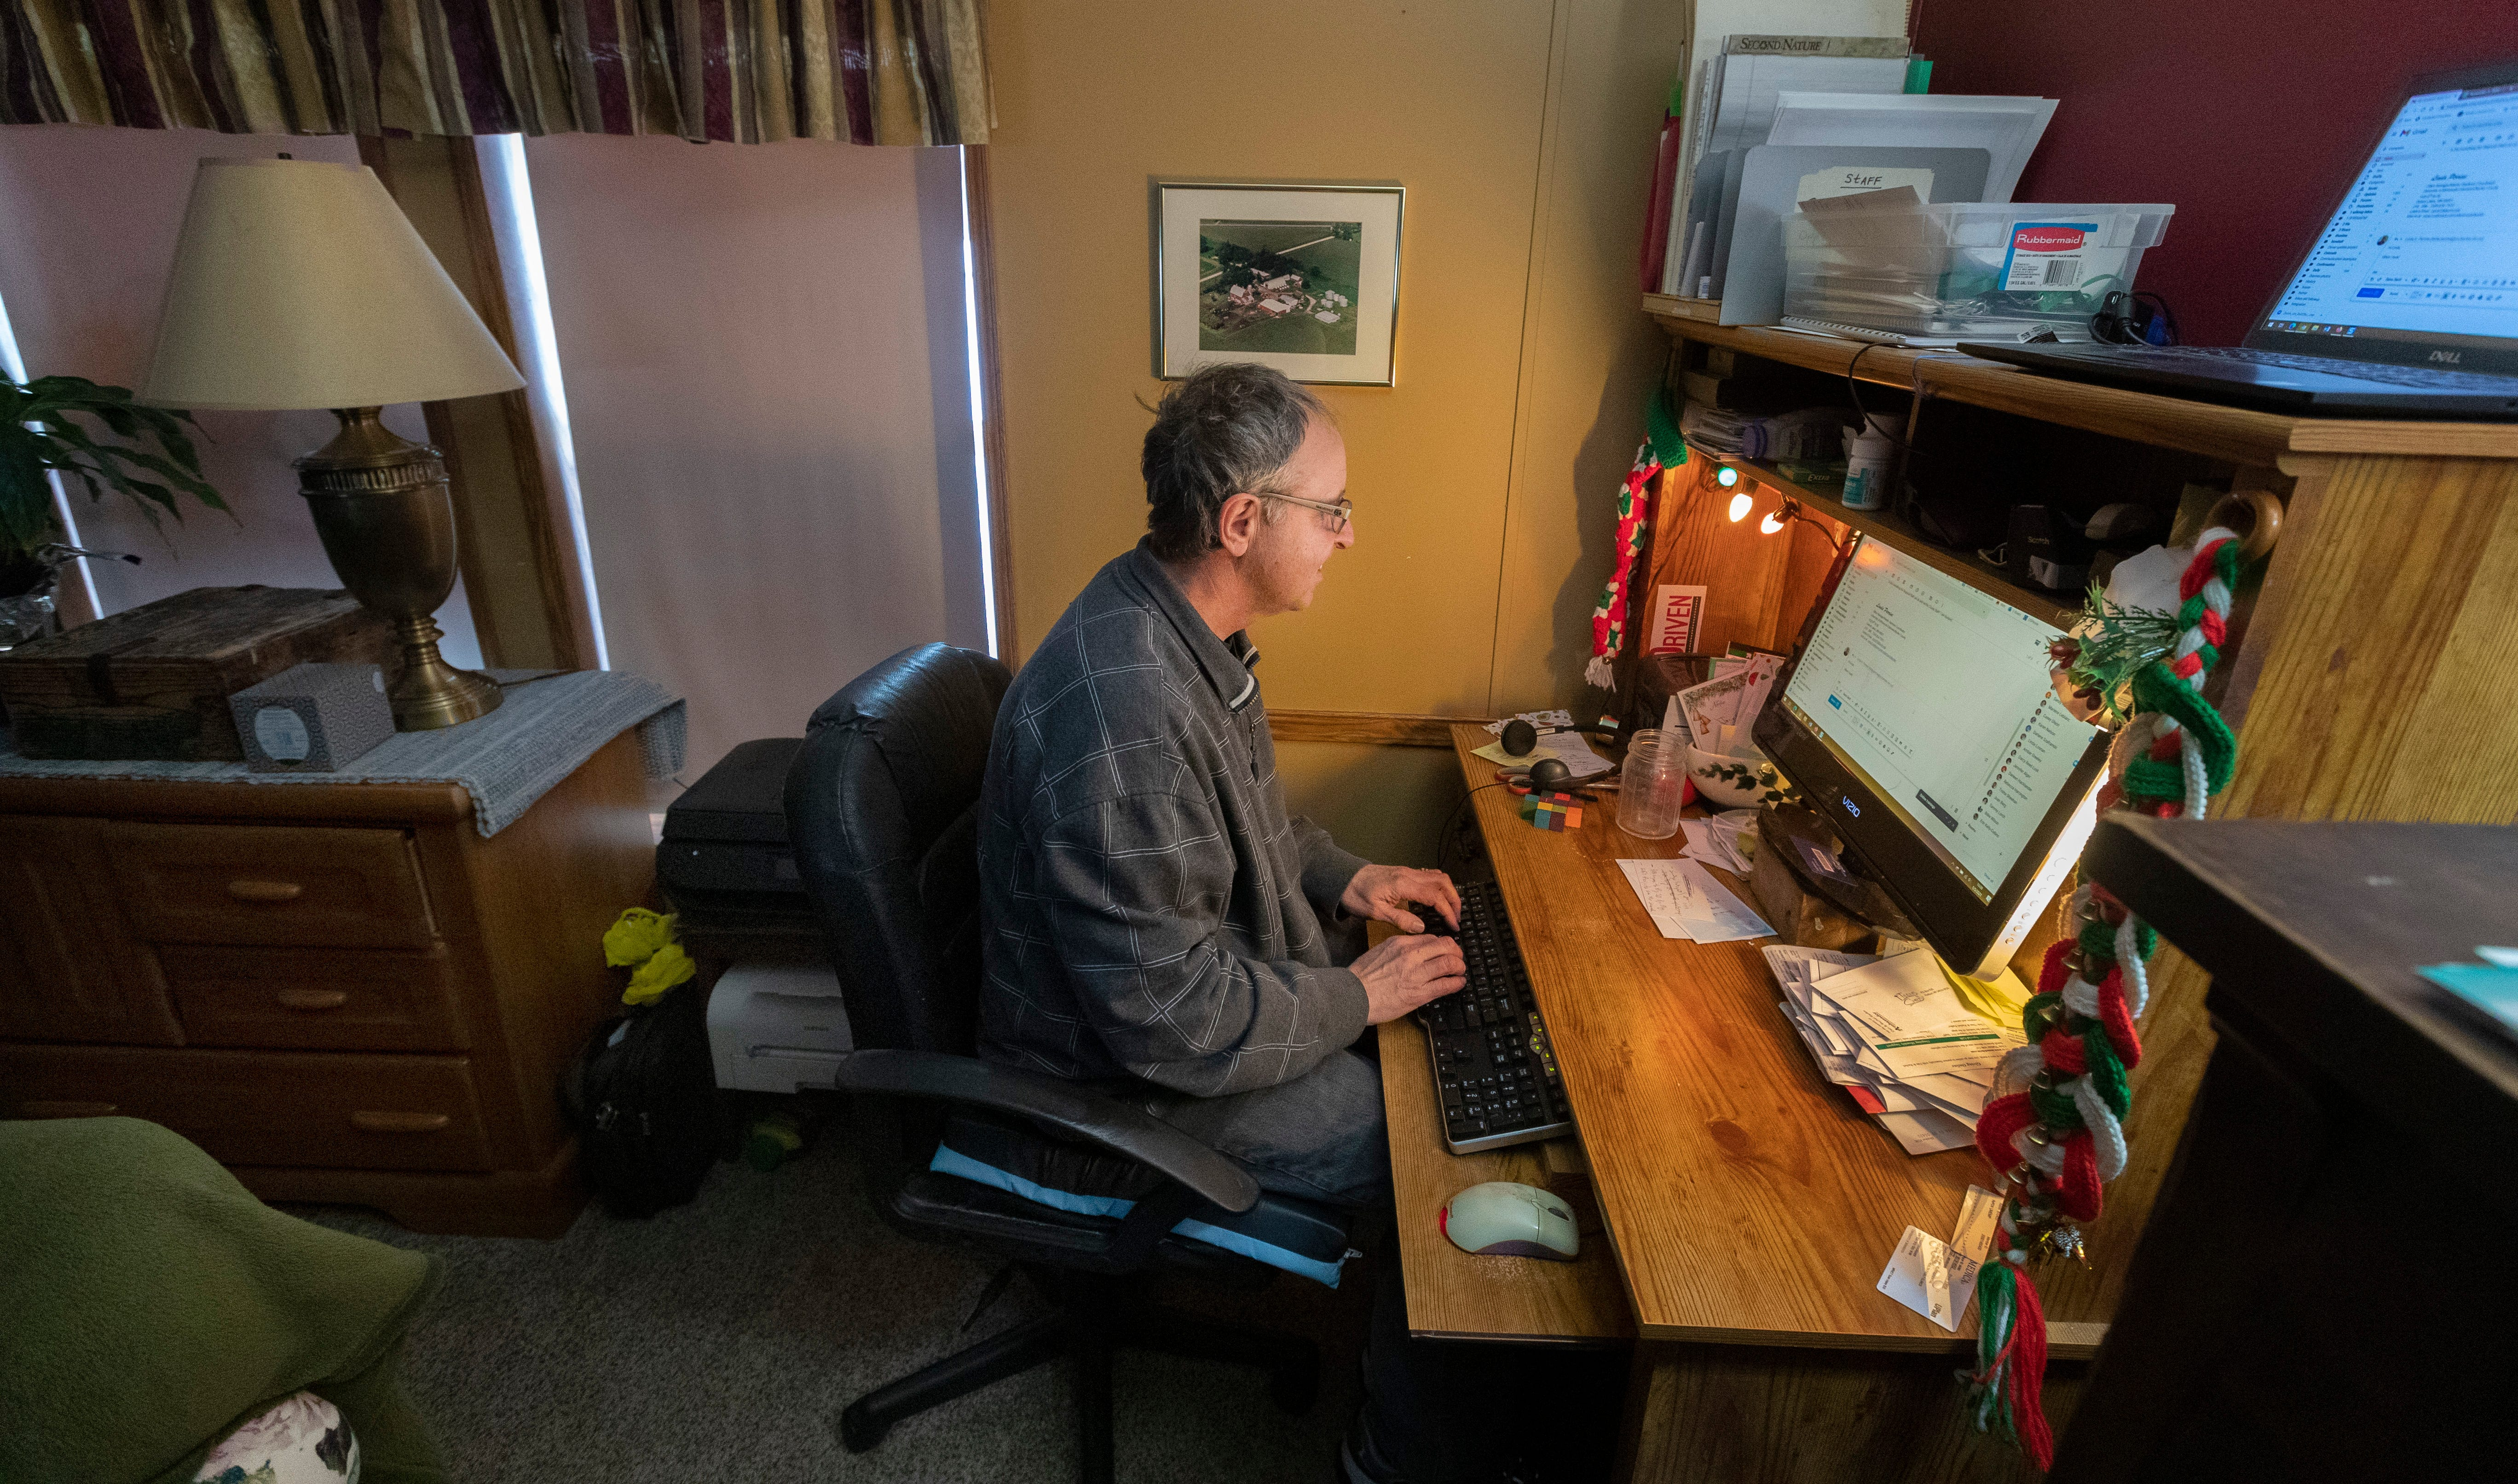 Todd Mehrkens of Hager City, Wis., lives near the Mississippi River in a rural area where the internet service was slow.